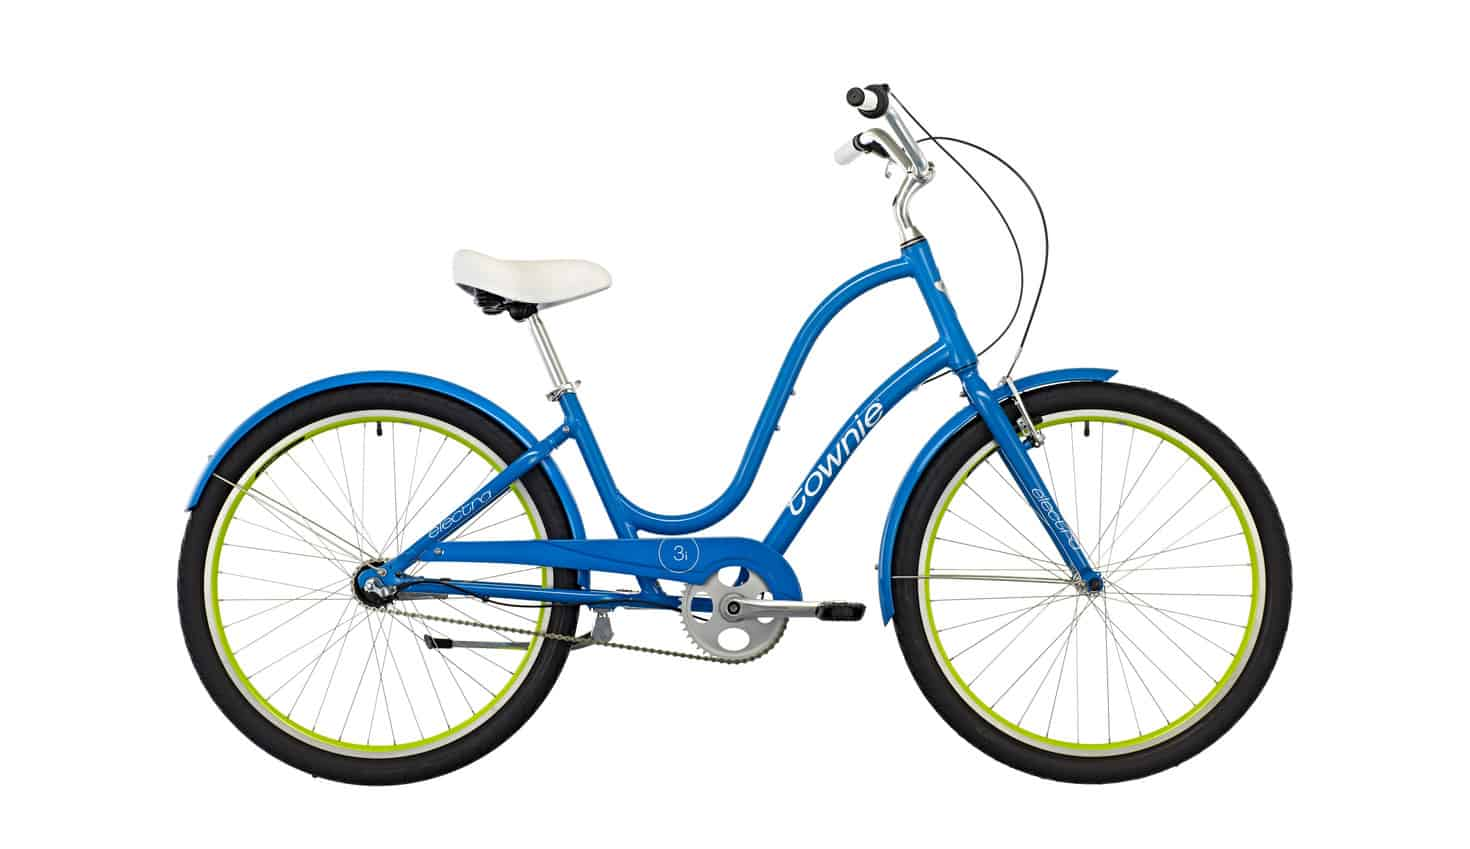 Electra_Townie_Original_3i_Ladies_Caribbean_Blue[1470x849]